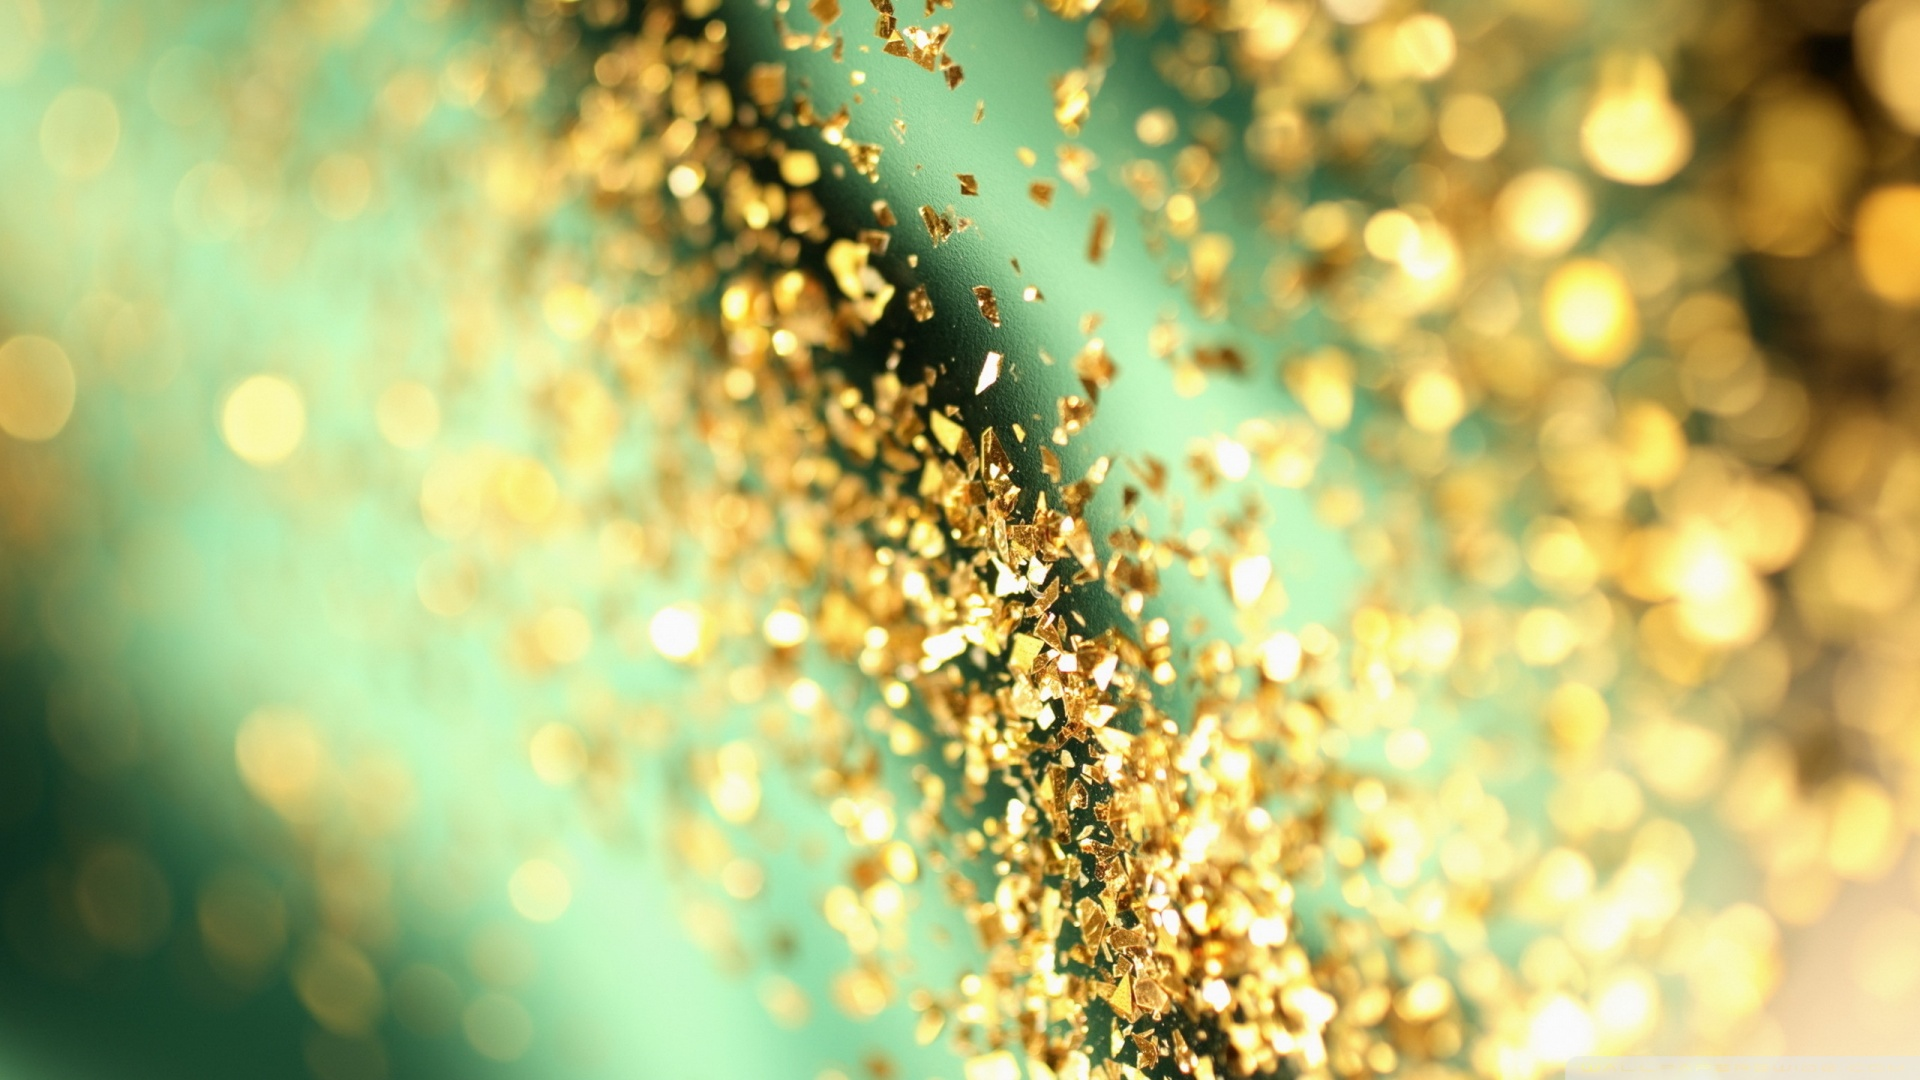 Bokeh-glitter-wallpaper-wpc5802996